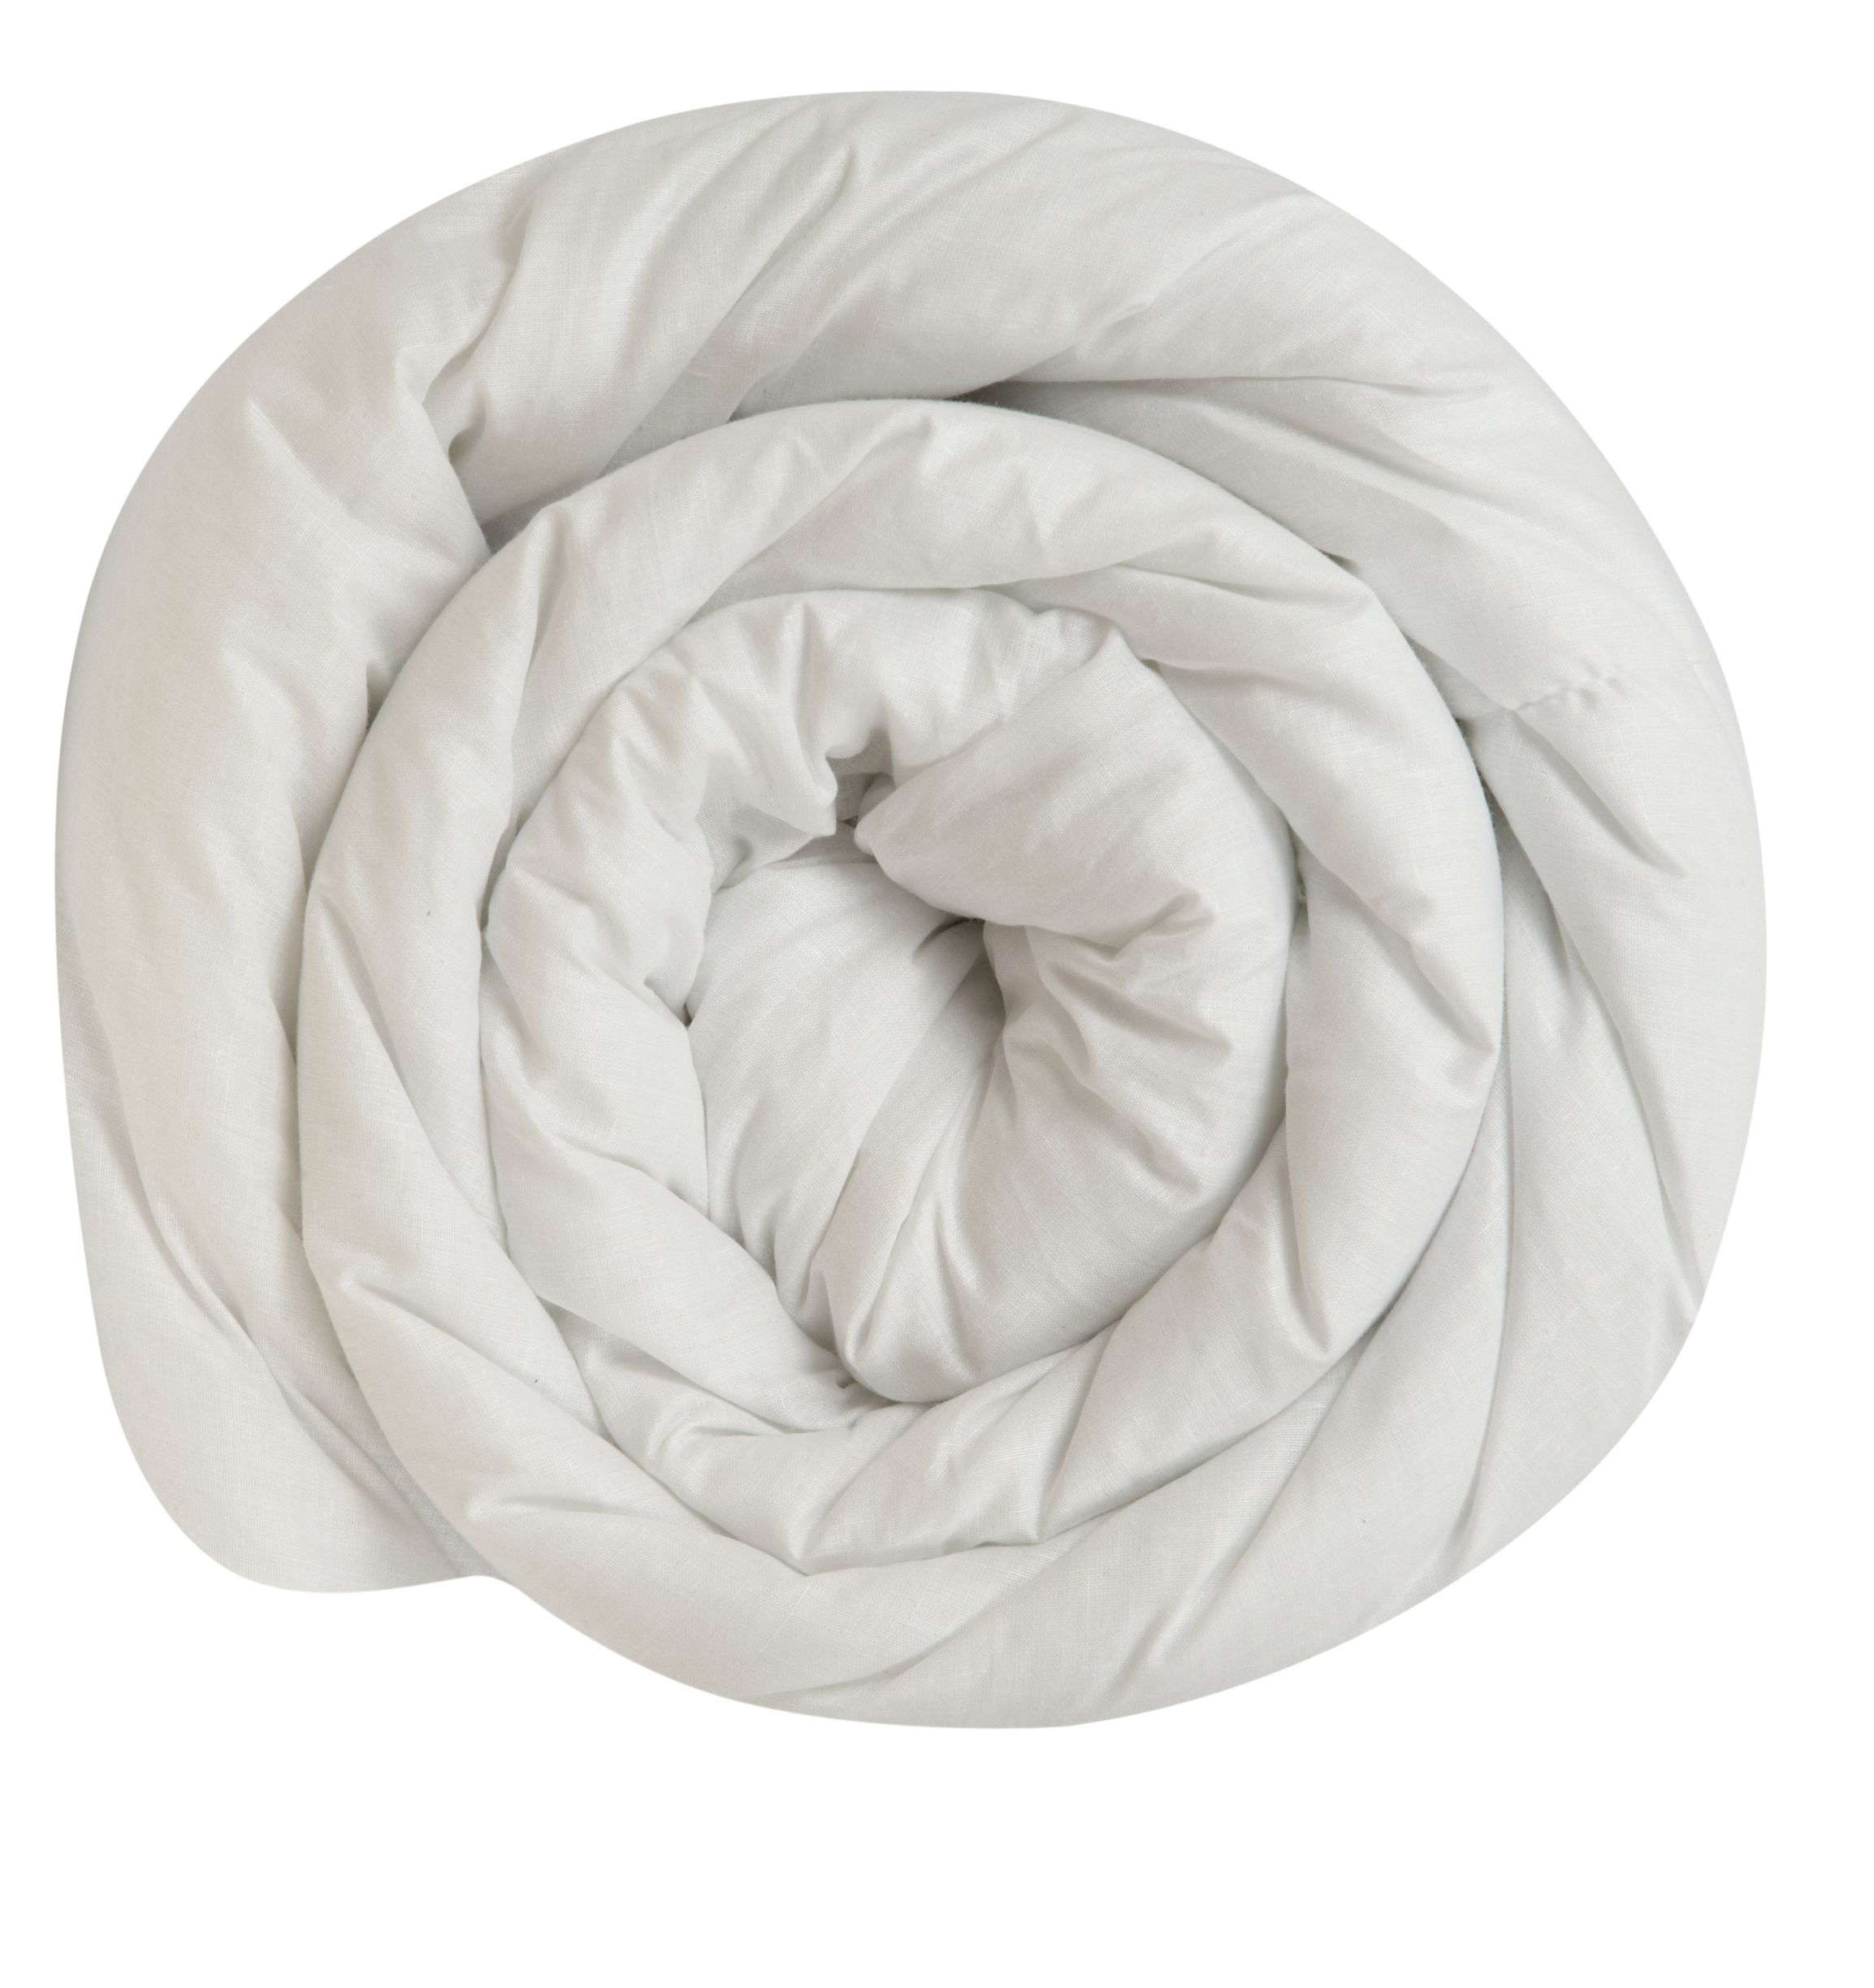 Feather and down 13.5 tog king duvet